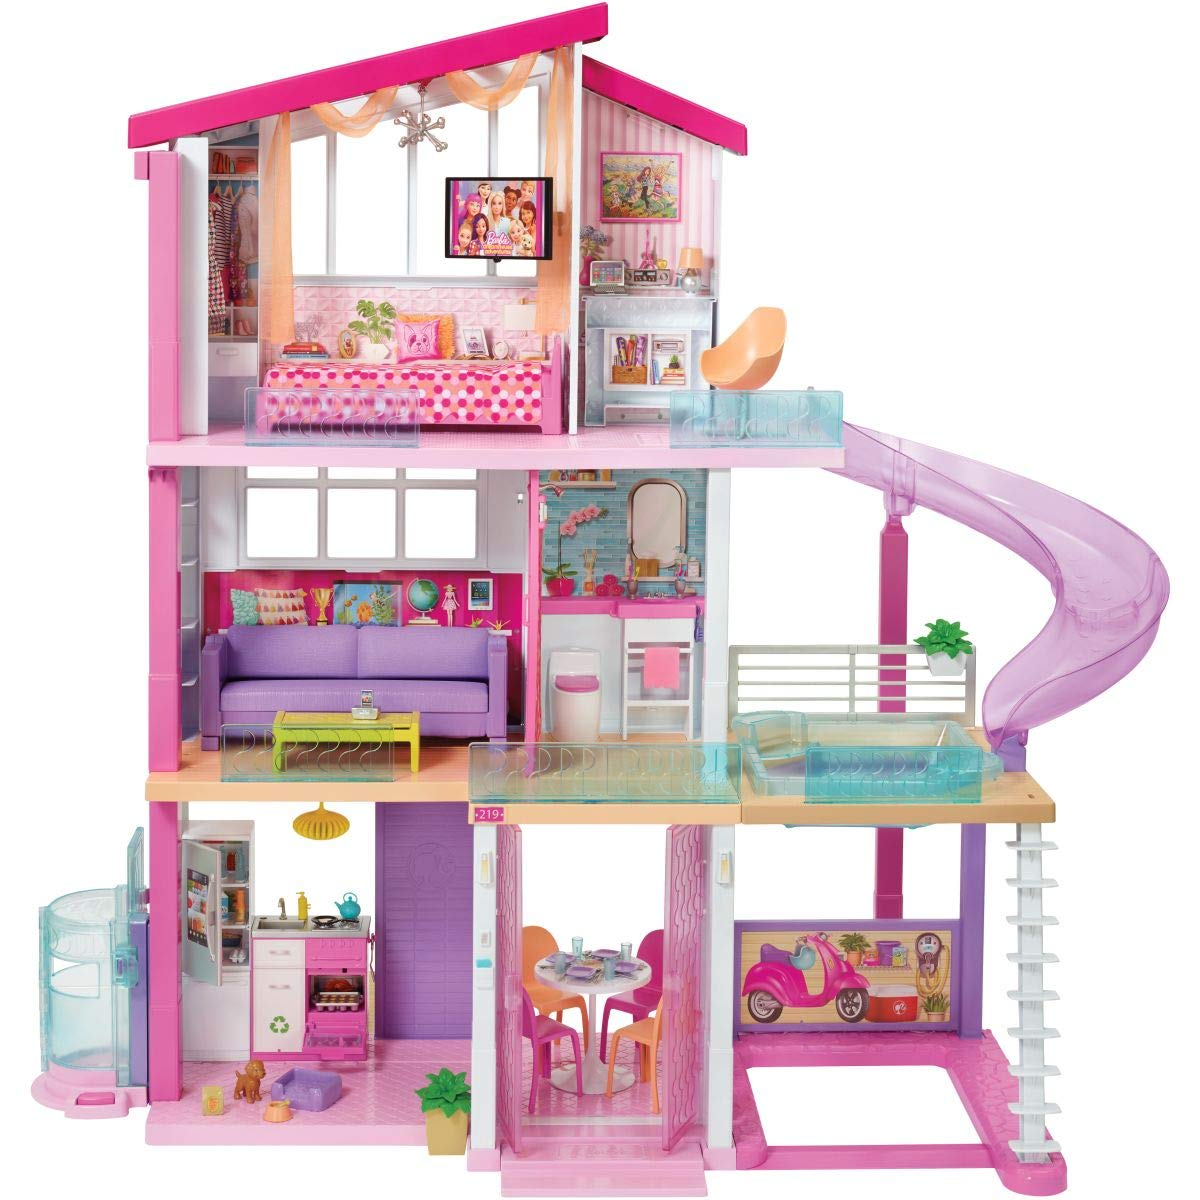 Barbie New Dream House Barbie Career Doll Chef Doll Buy Online In Bangladesh At Bangladesh Desertcart Com Productid 203864120